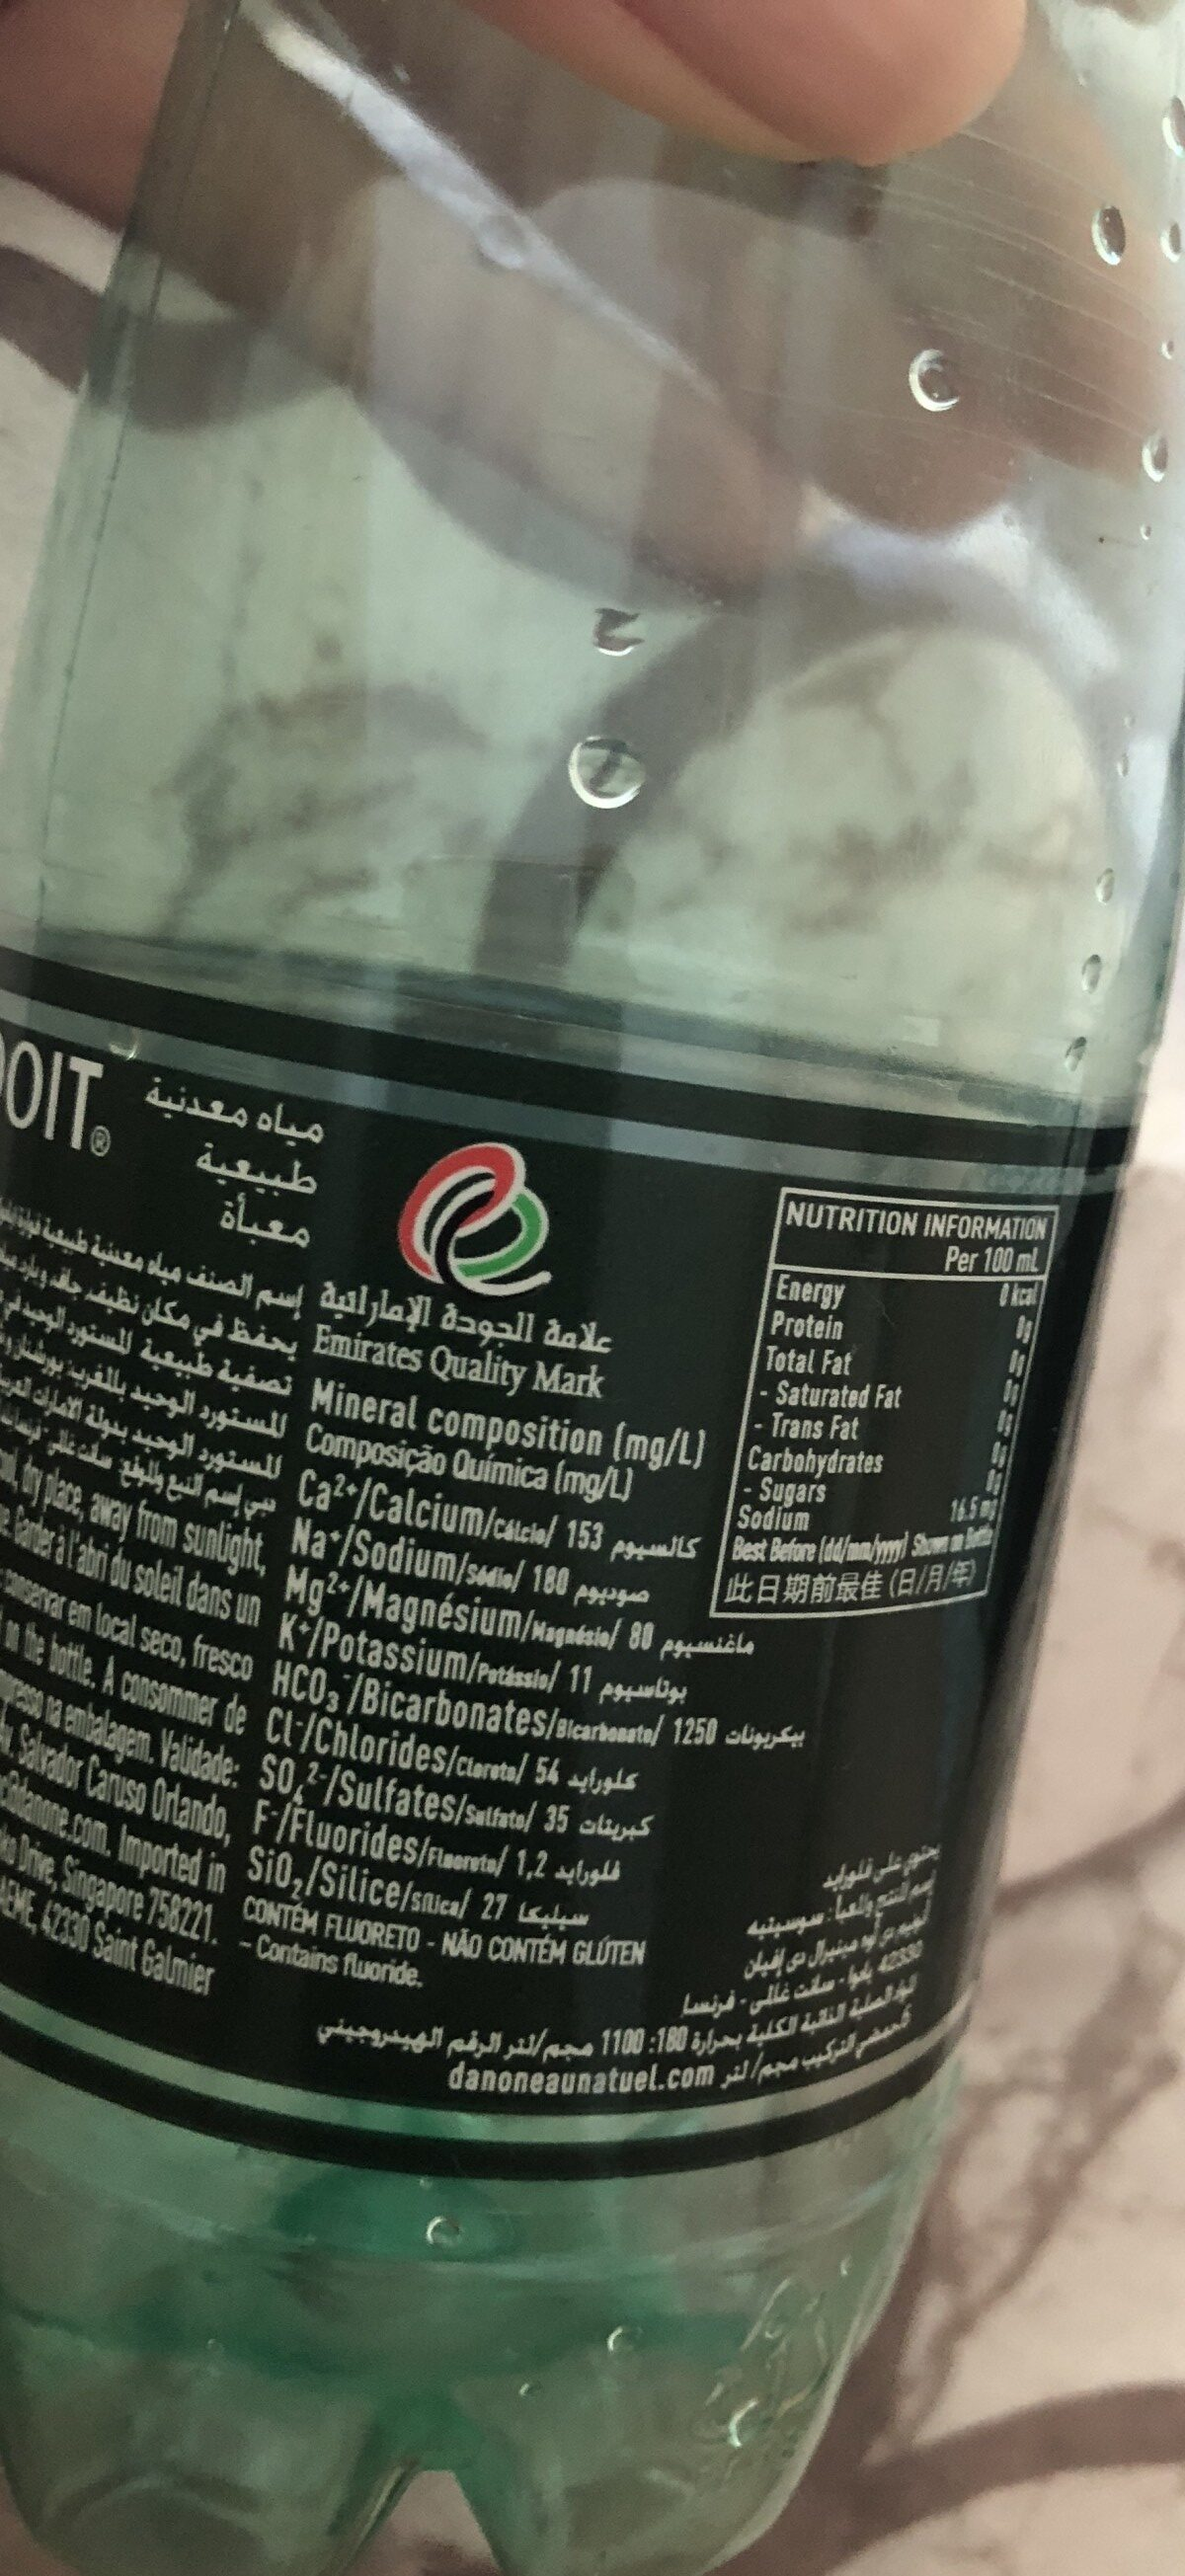 French Lightly Sparkling Water - Ingredients - fr